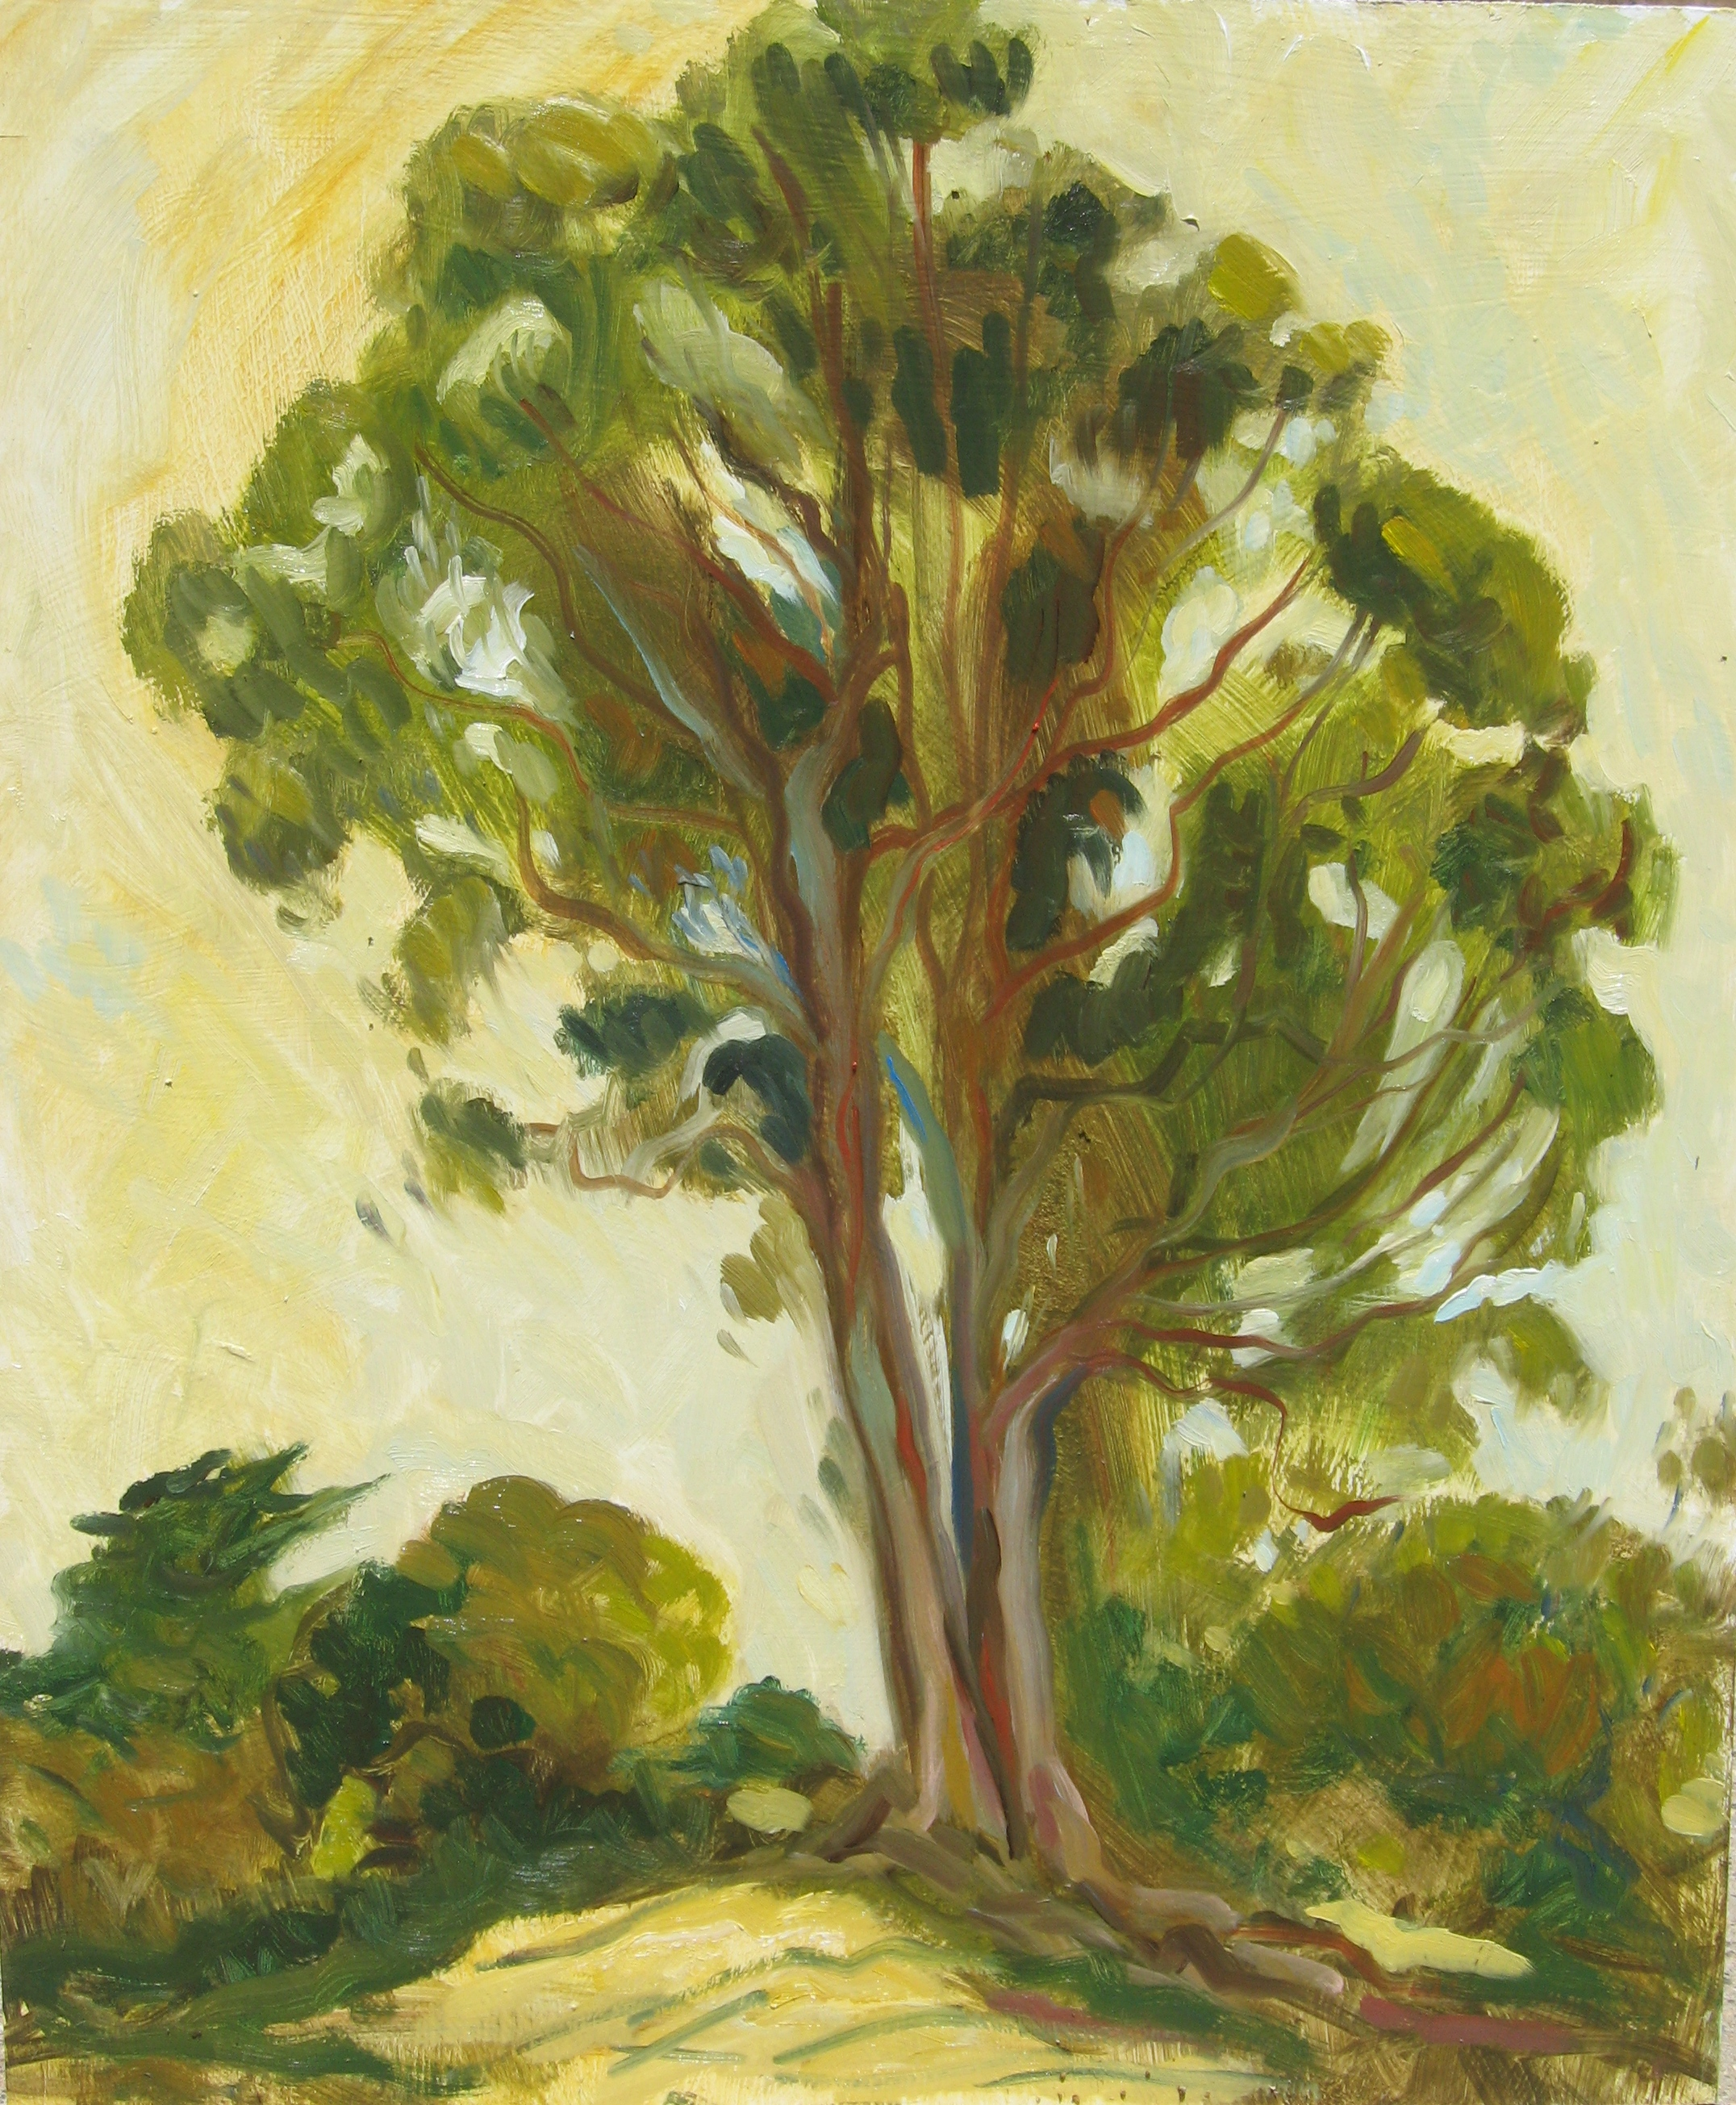 Morning Eucalyptus, oil on panel, 24 x 20 inches, 2011